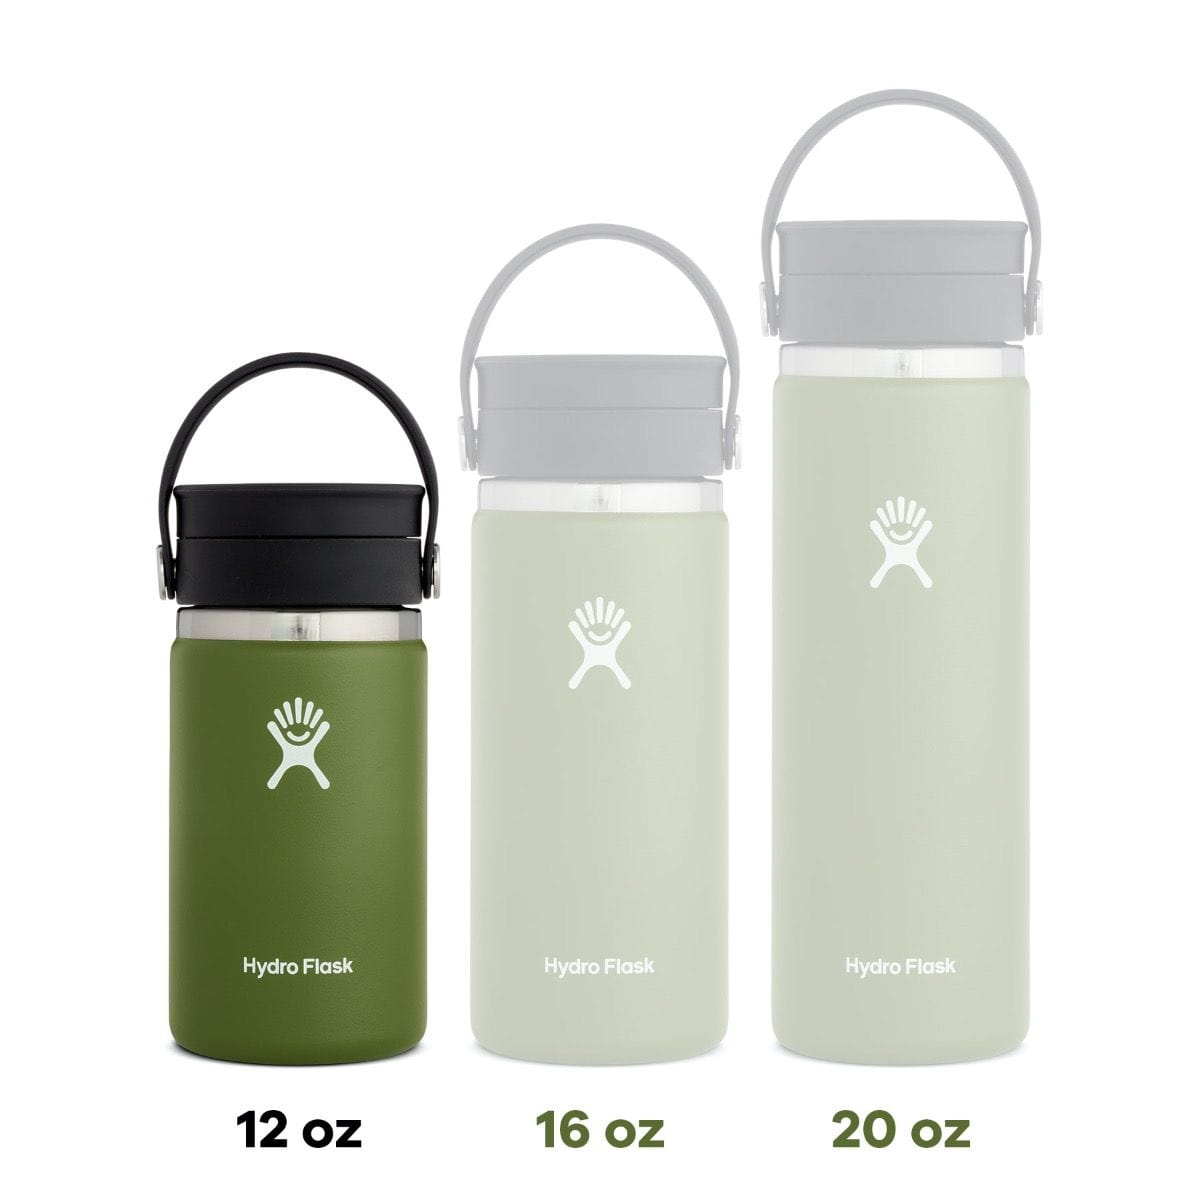 12 oz. Wide Mouth Coffee Hydro Flask - Black